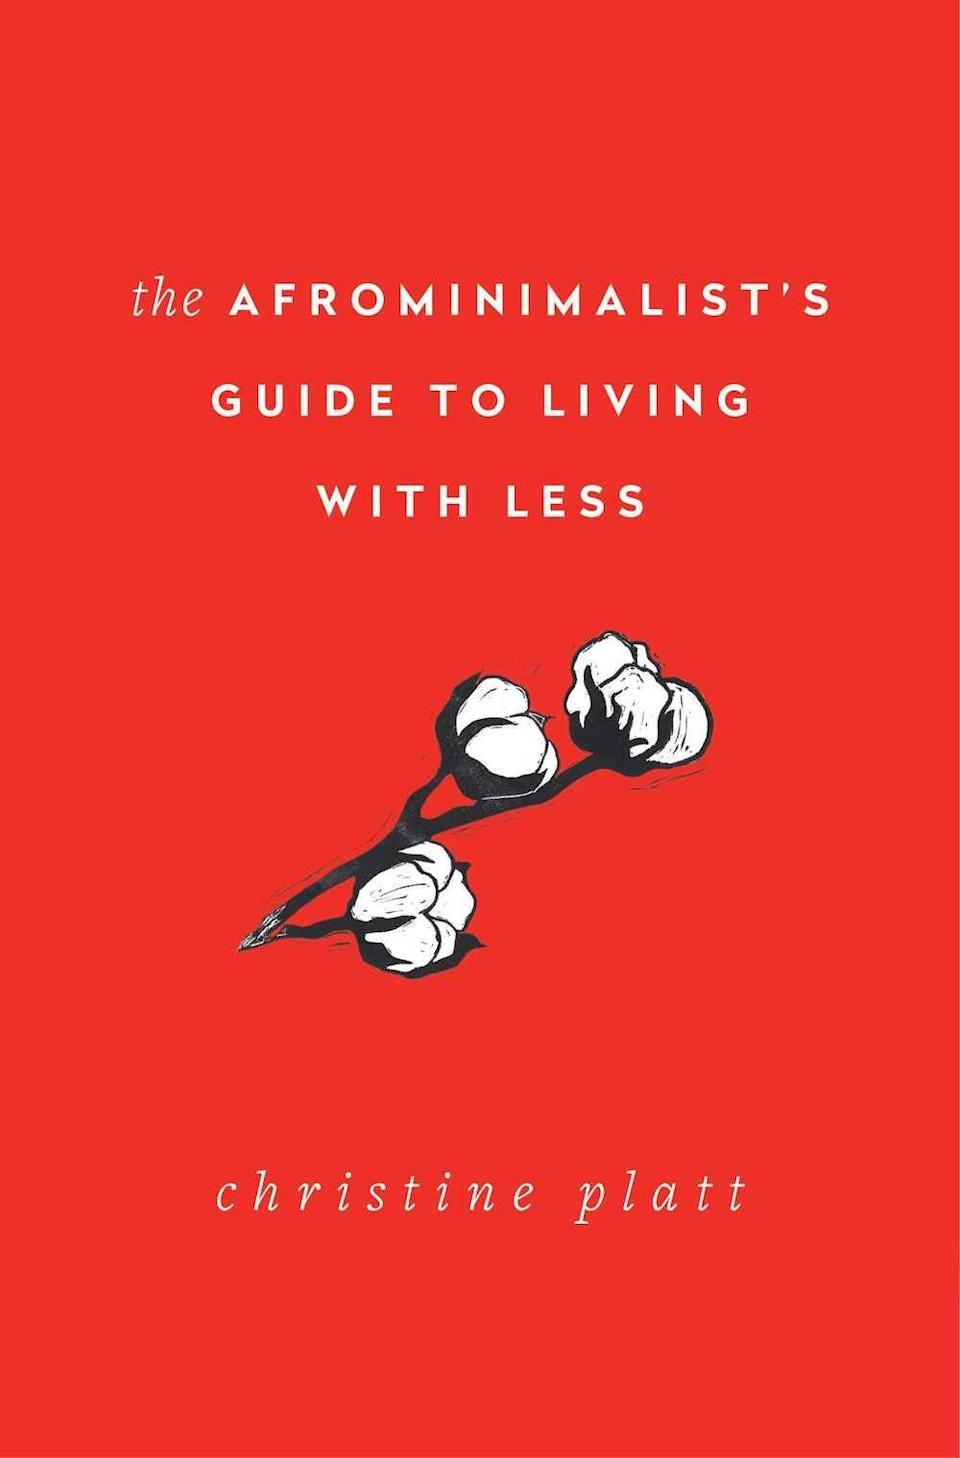 The Afrominimalist's Guide to Living with Less Book